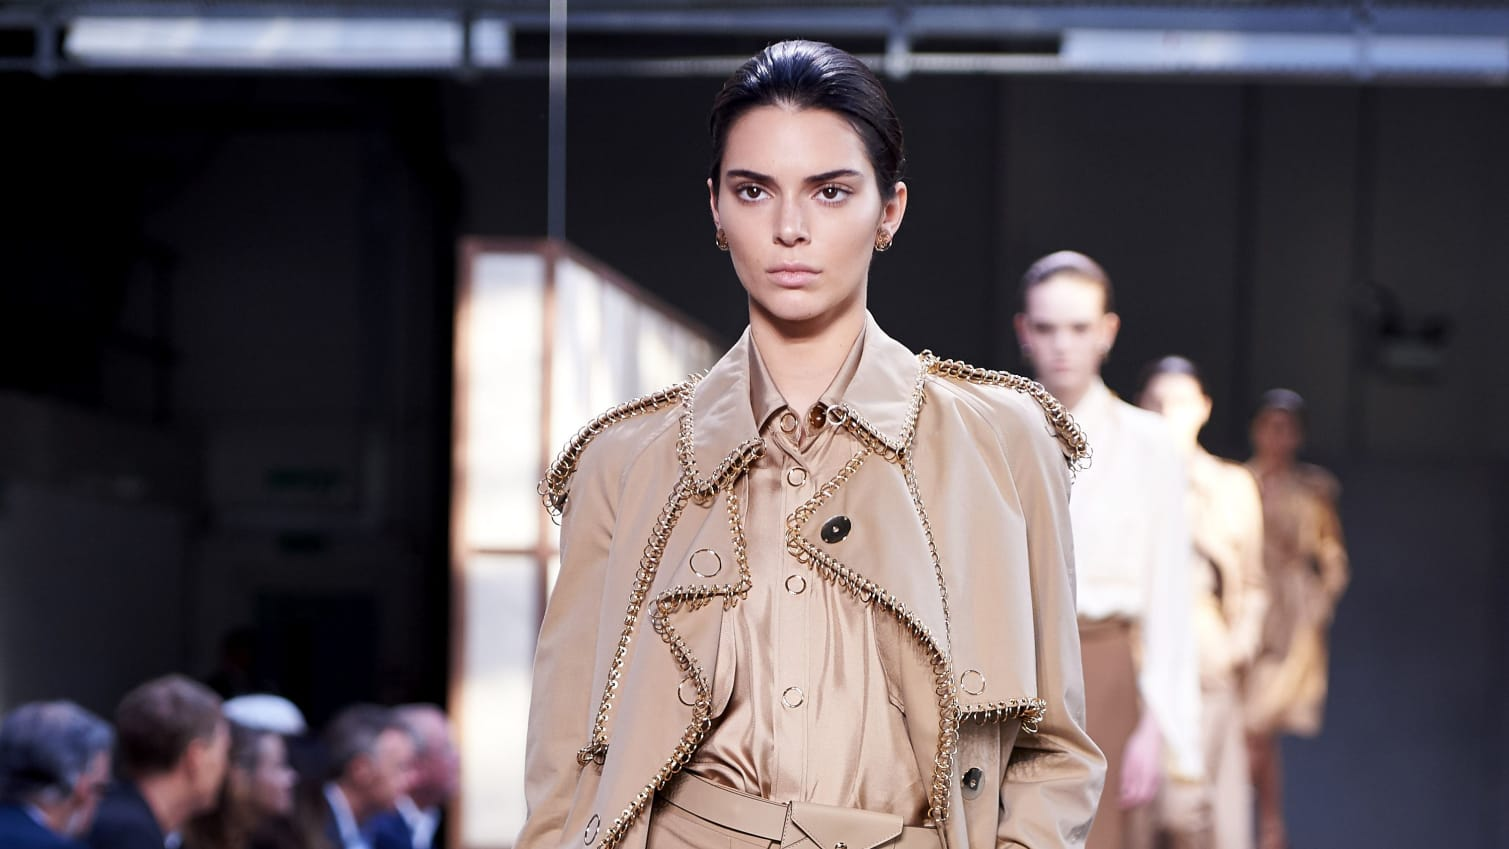 Kendall Jenner camina en Burberry durante la London Fashion Week en Londres el 17 de septiembre de 2018.